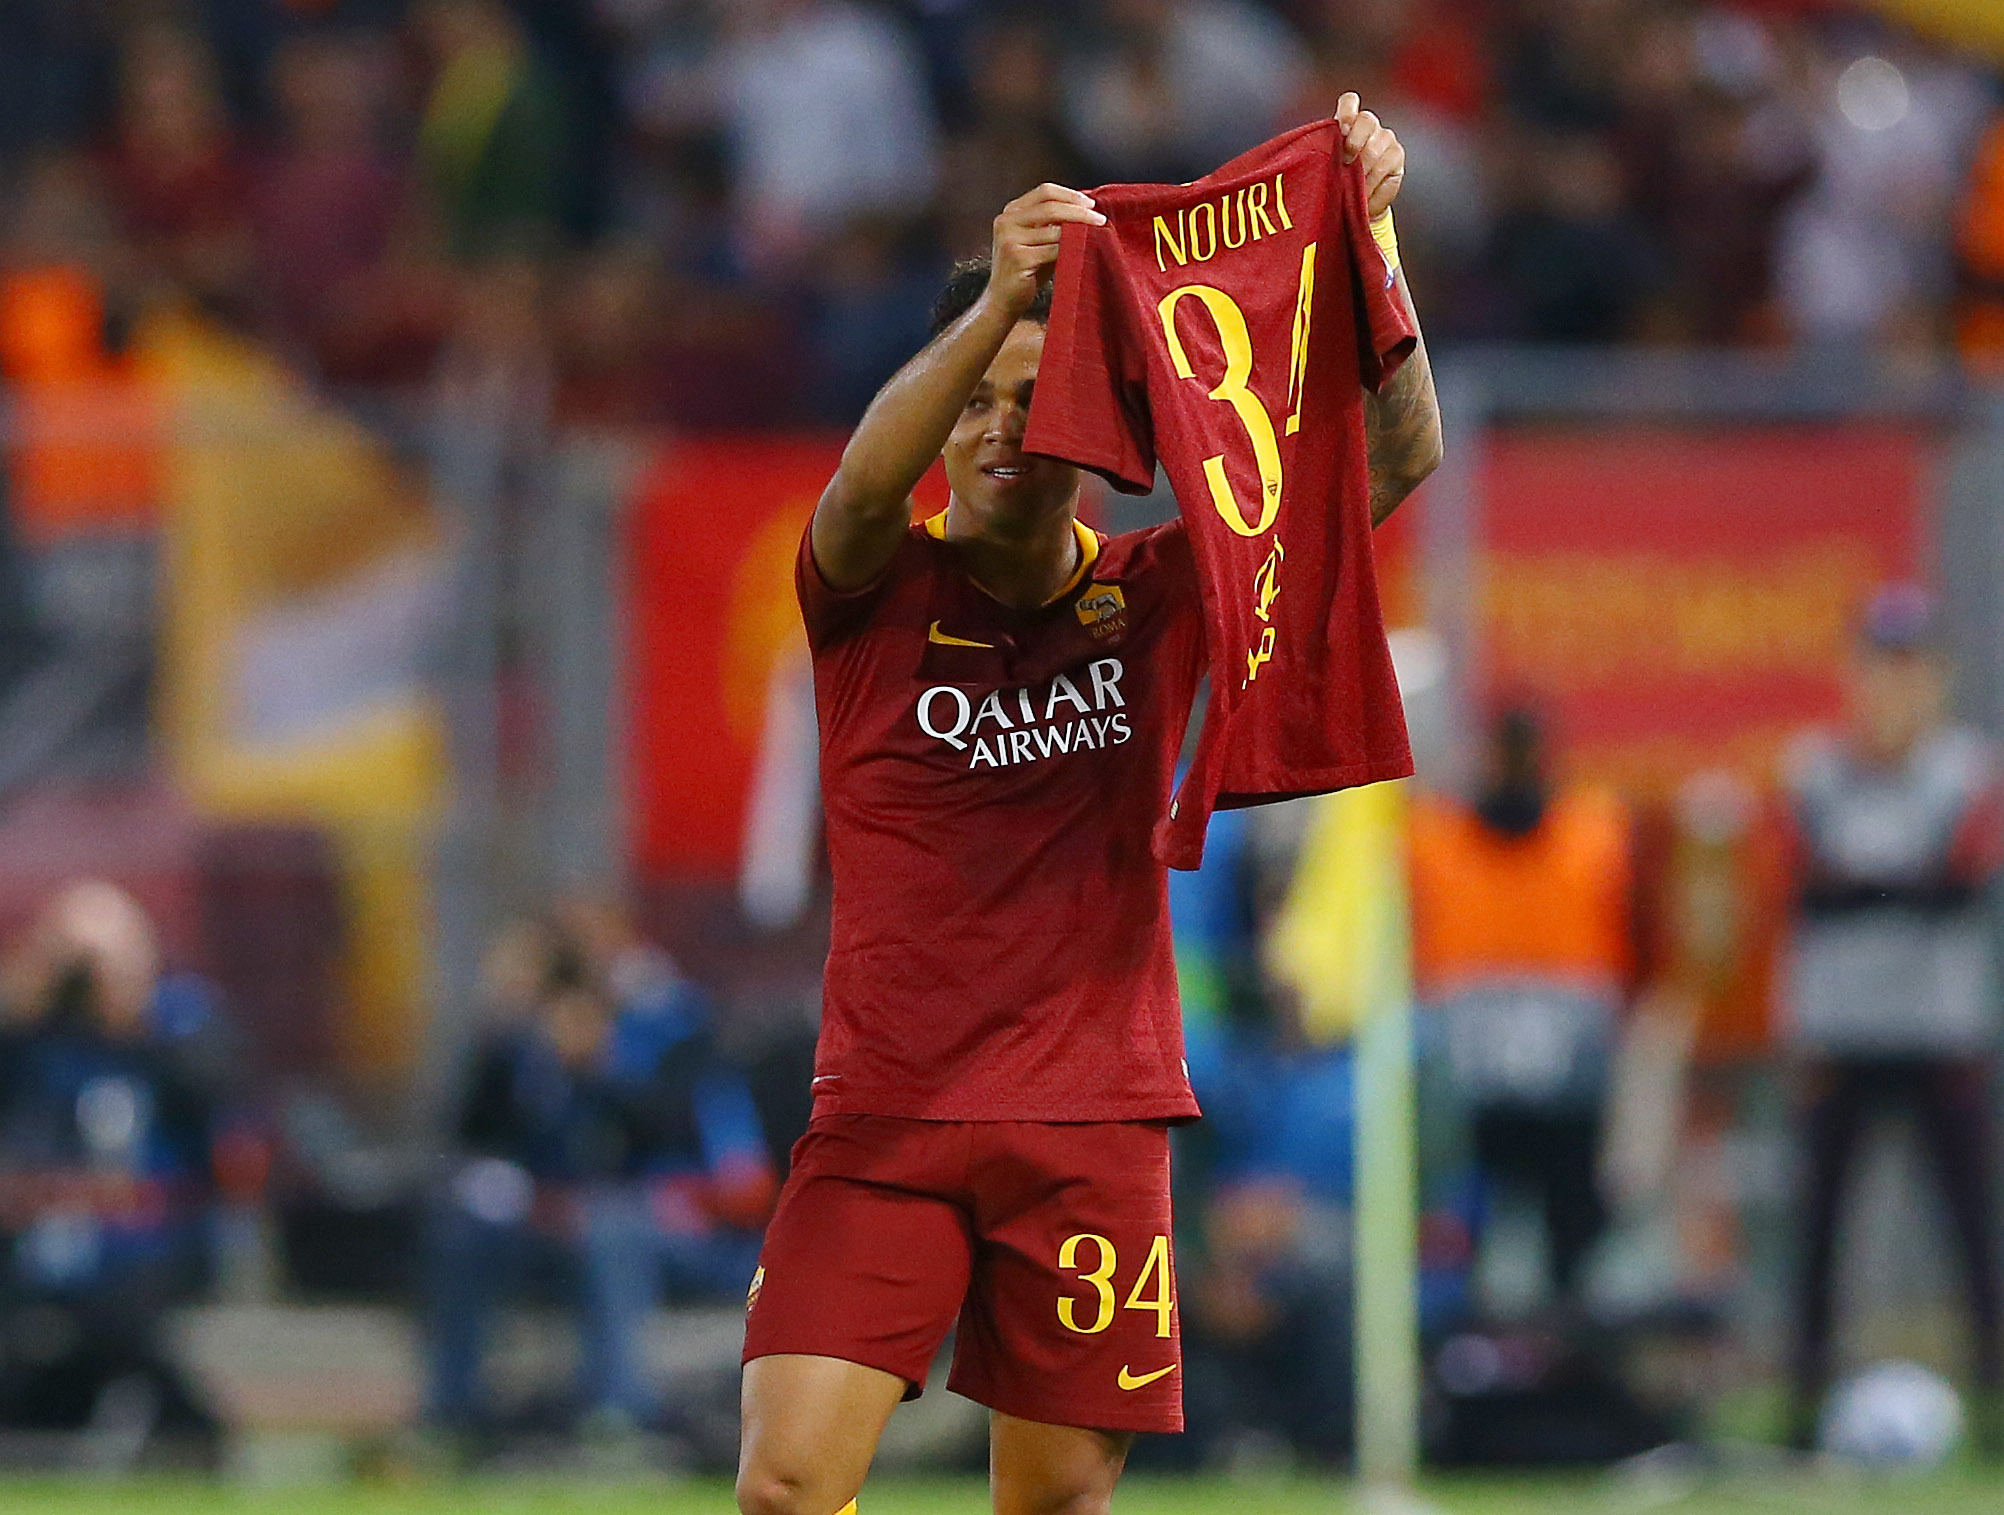 Kluivert Pays Incredible Tribute To Former Ajax Teammate After Scoring For Roma